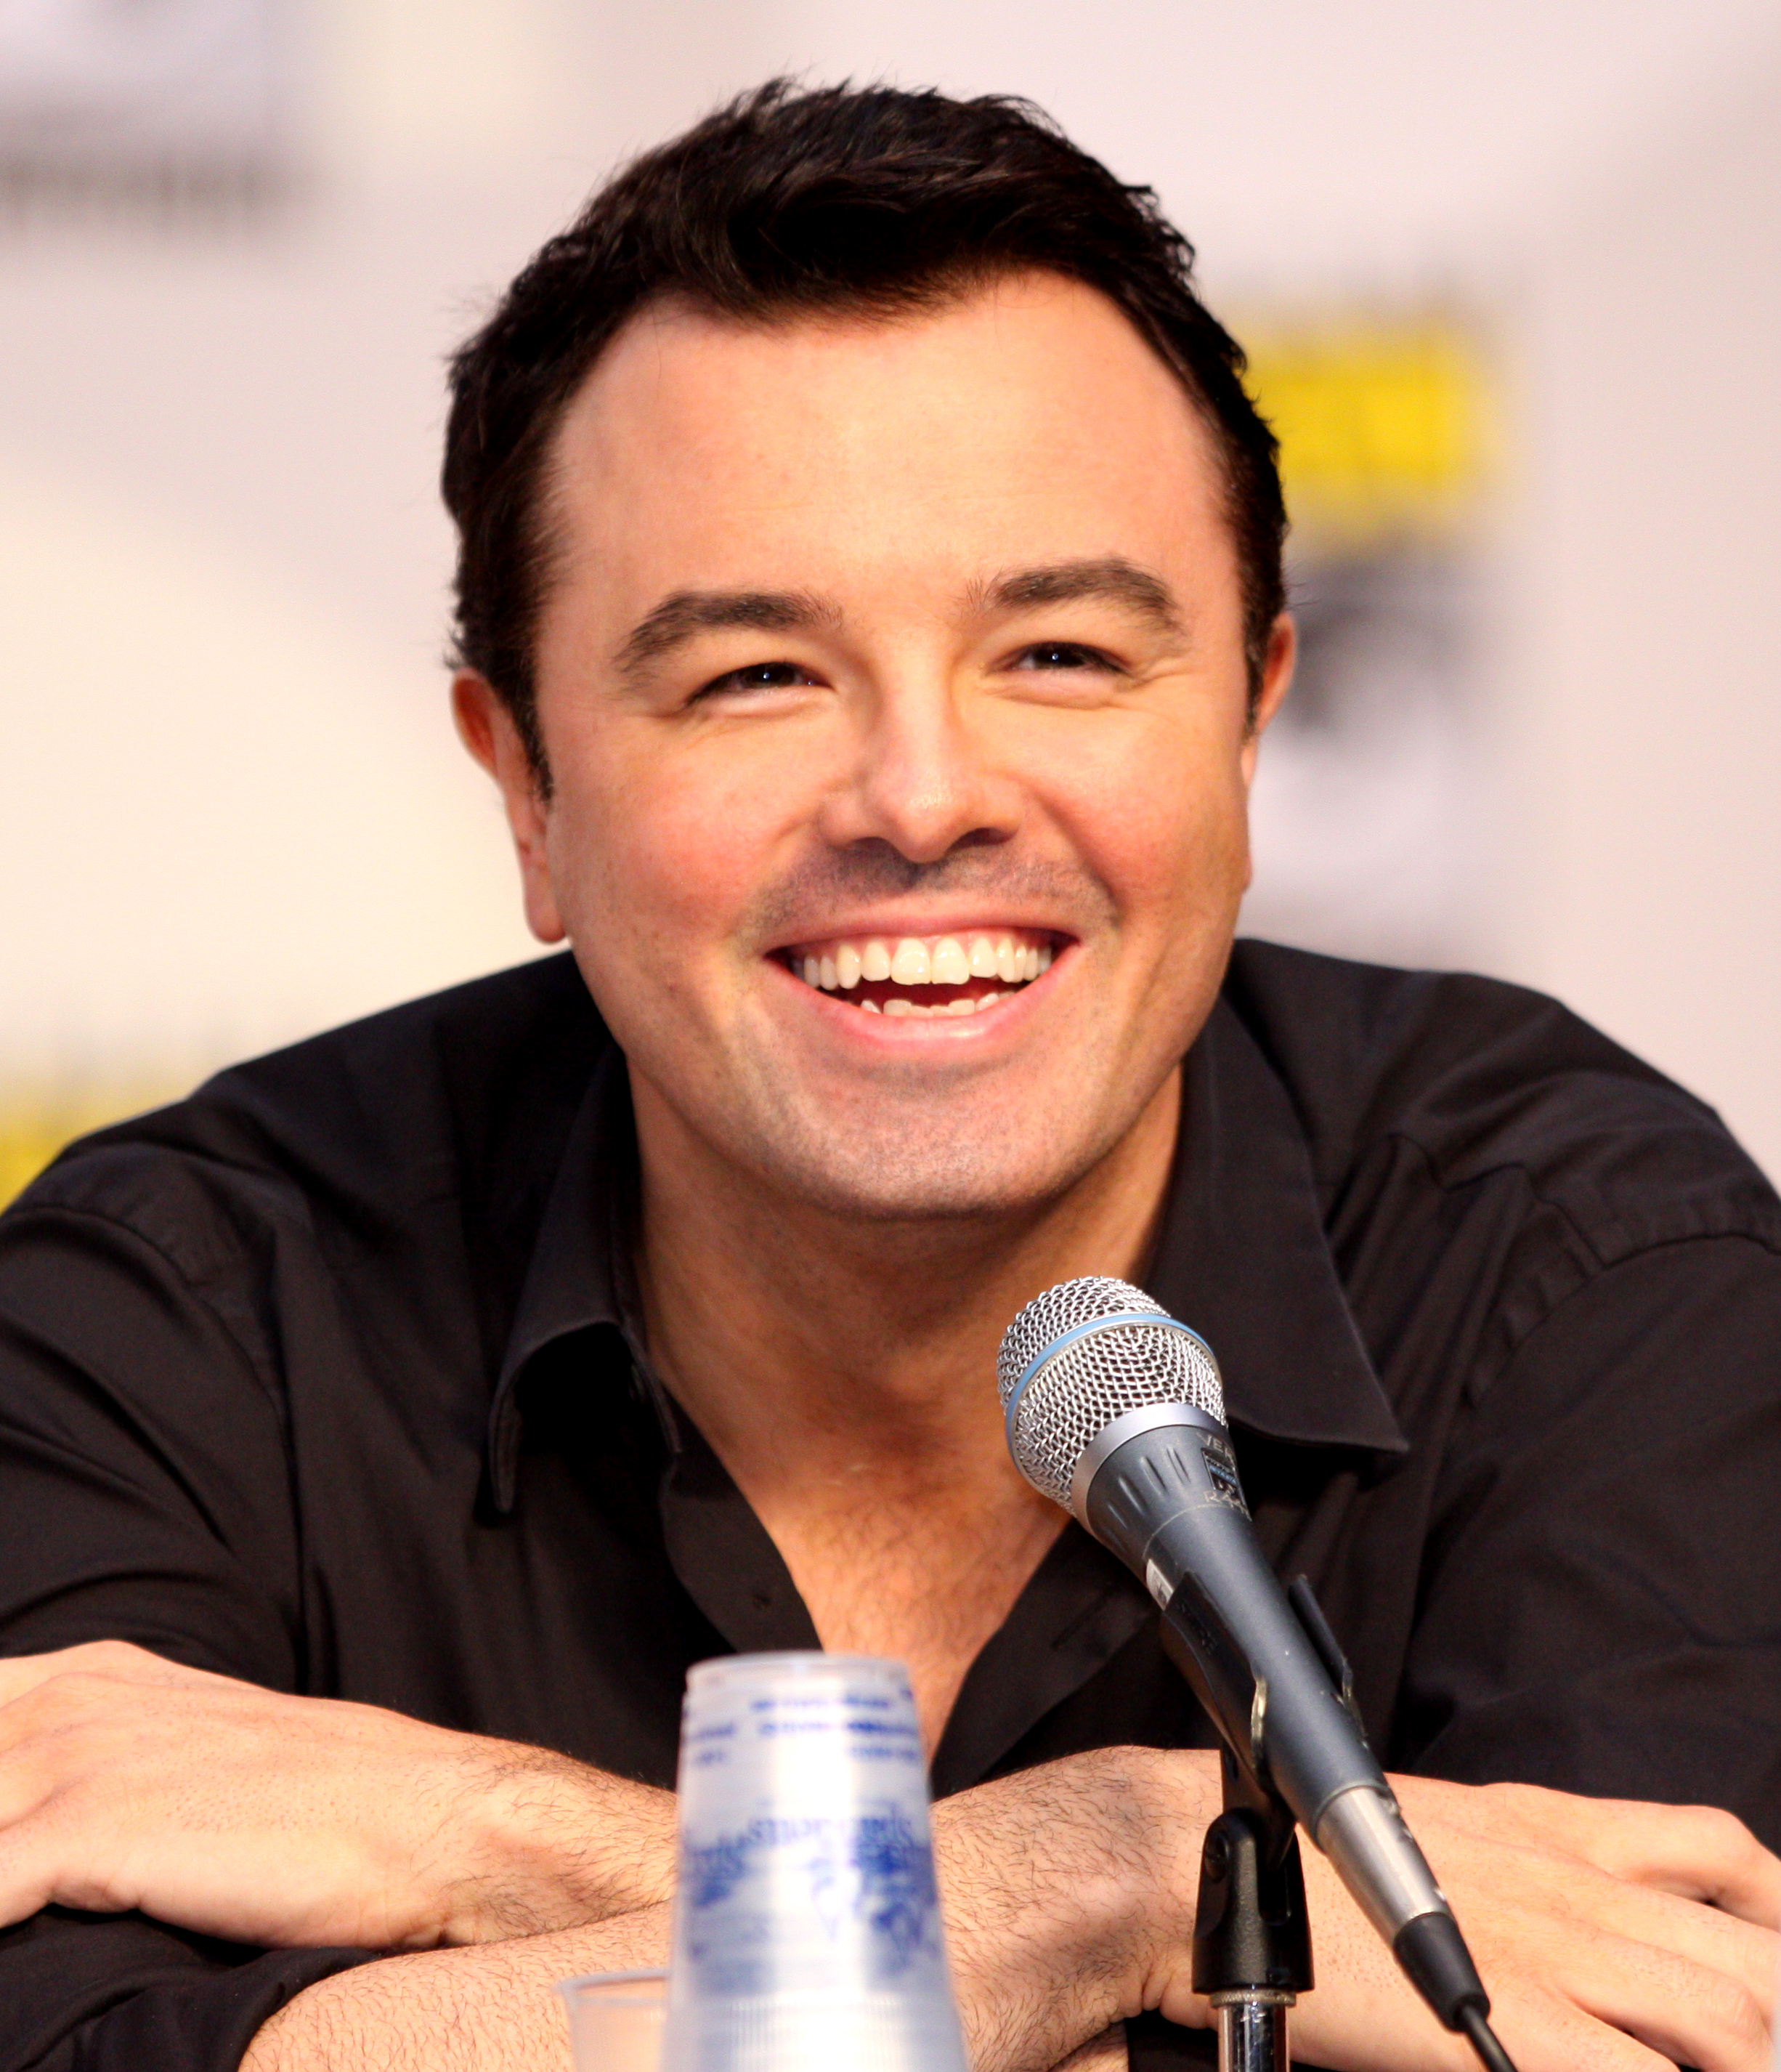 Description Seth MacFarlane by Gage Skidmore 5.jpg